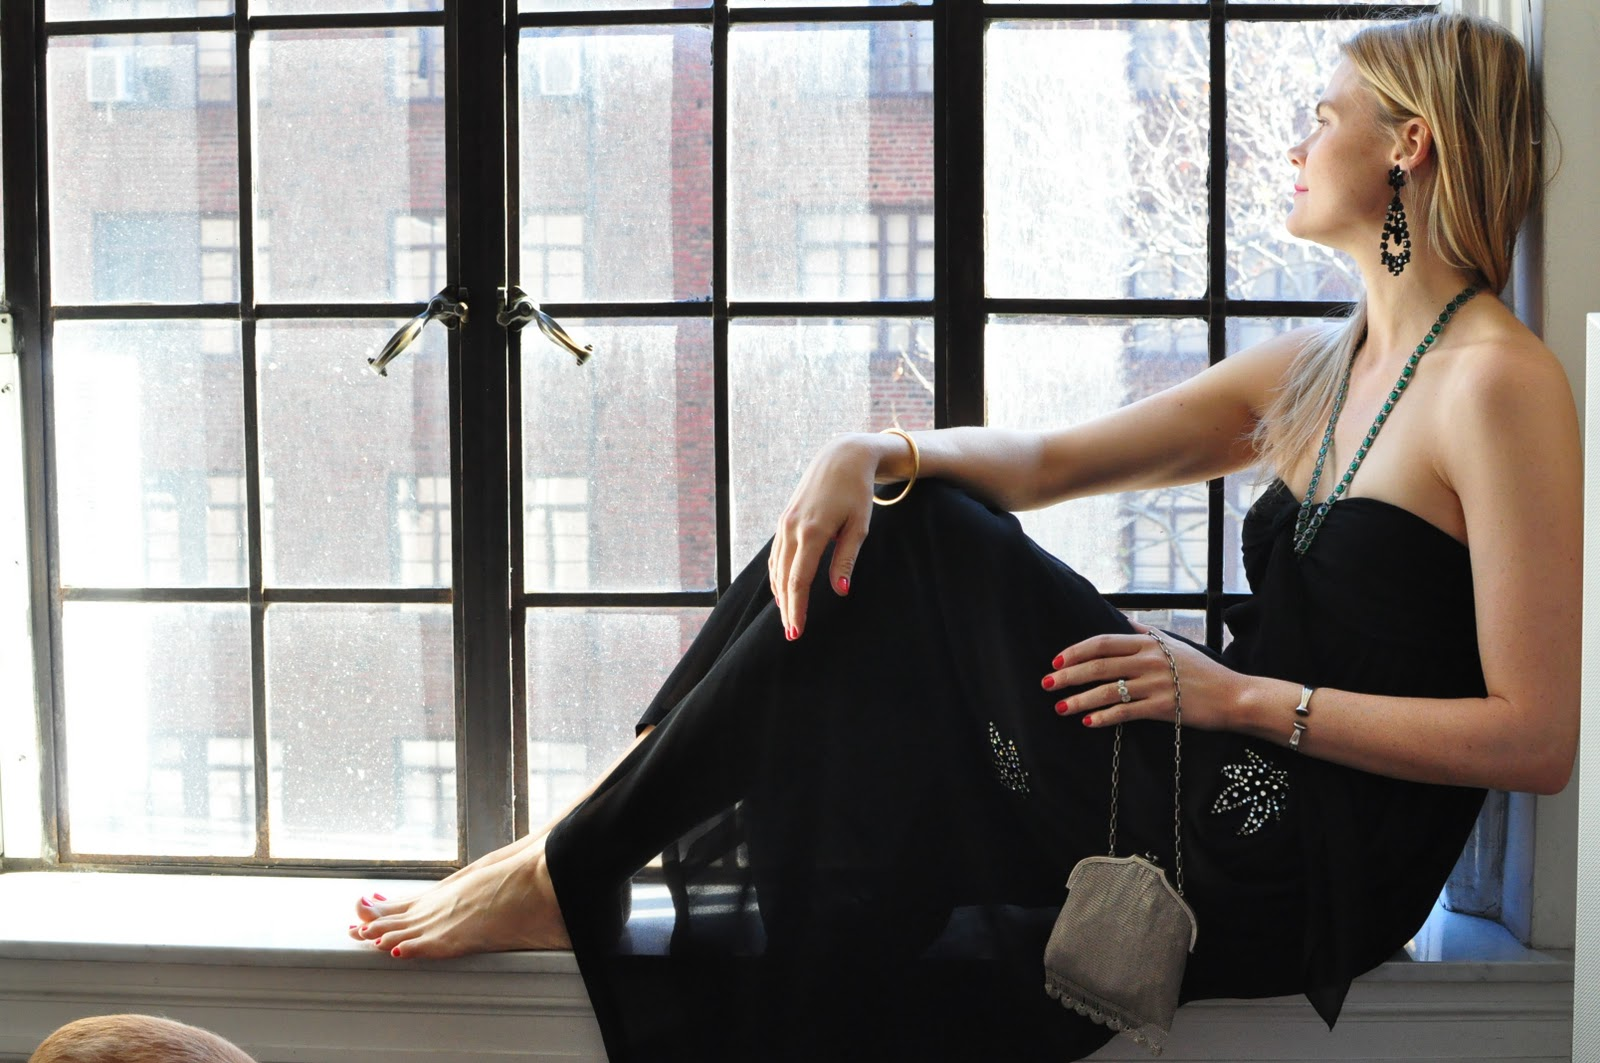 Kate Schelter in a New York apartment window sill - photo by Natalie Joos of Tales of Endearment